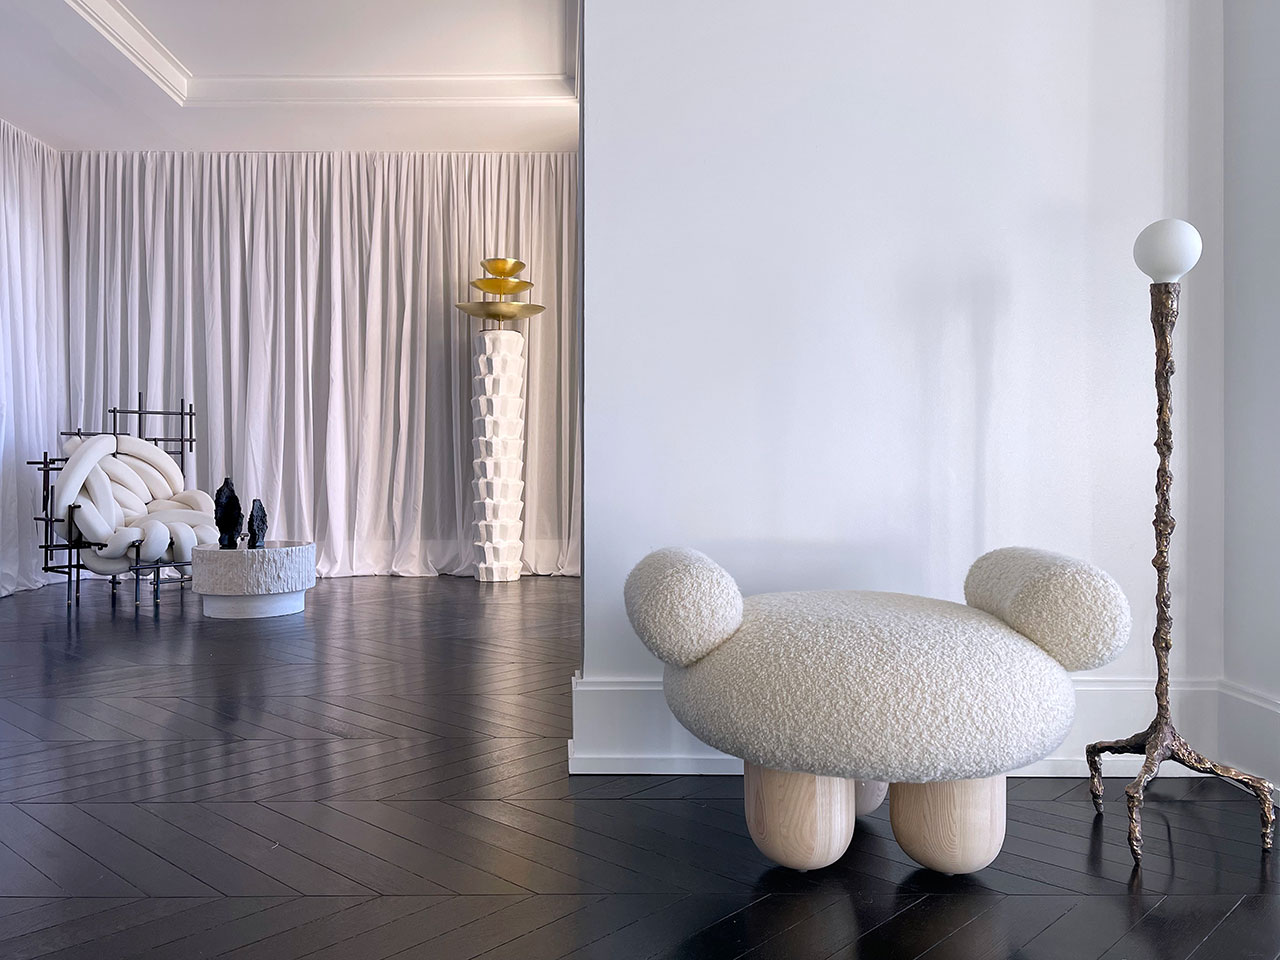 Galerie Philia at Walker Tower, Chelsea, New York. Courtesy of Galerie Philia. Featured: Pietro Franceschini, Bling Bling, 2020. Ottoman. Ash Wood, Lamb. 79 x 43 x 63 cm. William Guillon, Sweet Thing IV, Unique Bronze Sculptural Lamp, 2019. Bronze.130 x 38 x 38 cm.